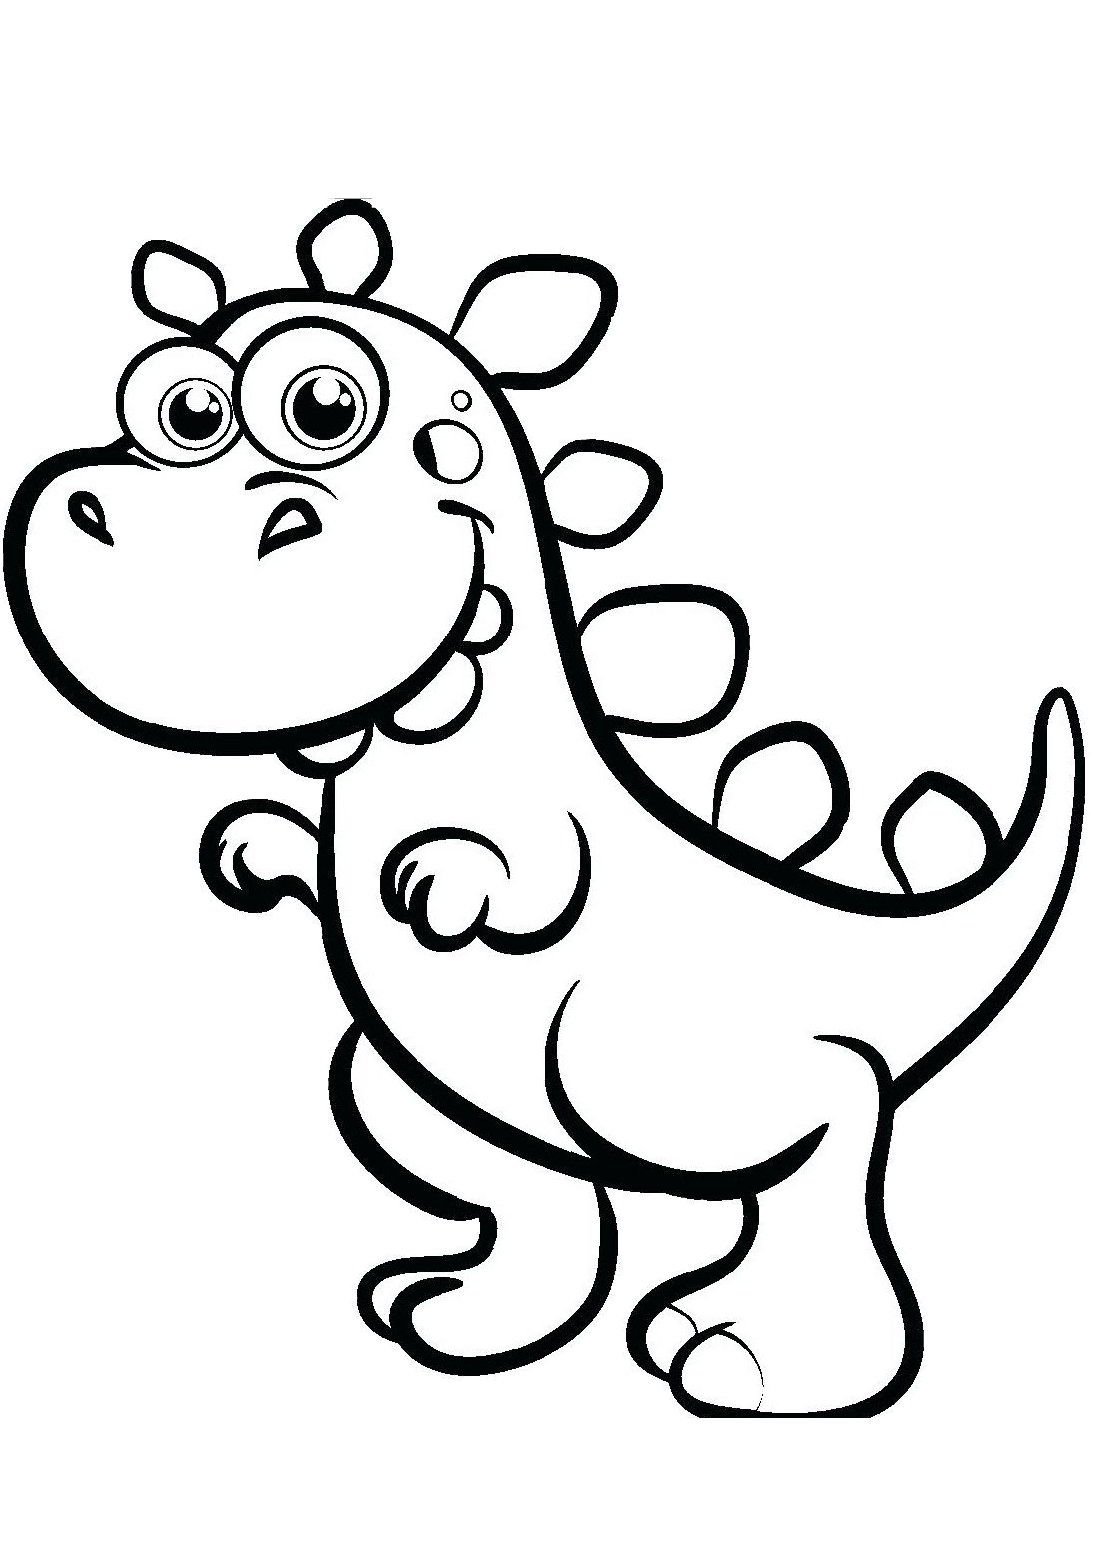 Easy Cartoon Dinosaur Coloring Pages